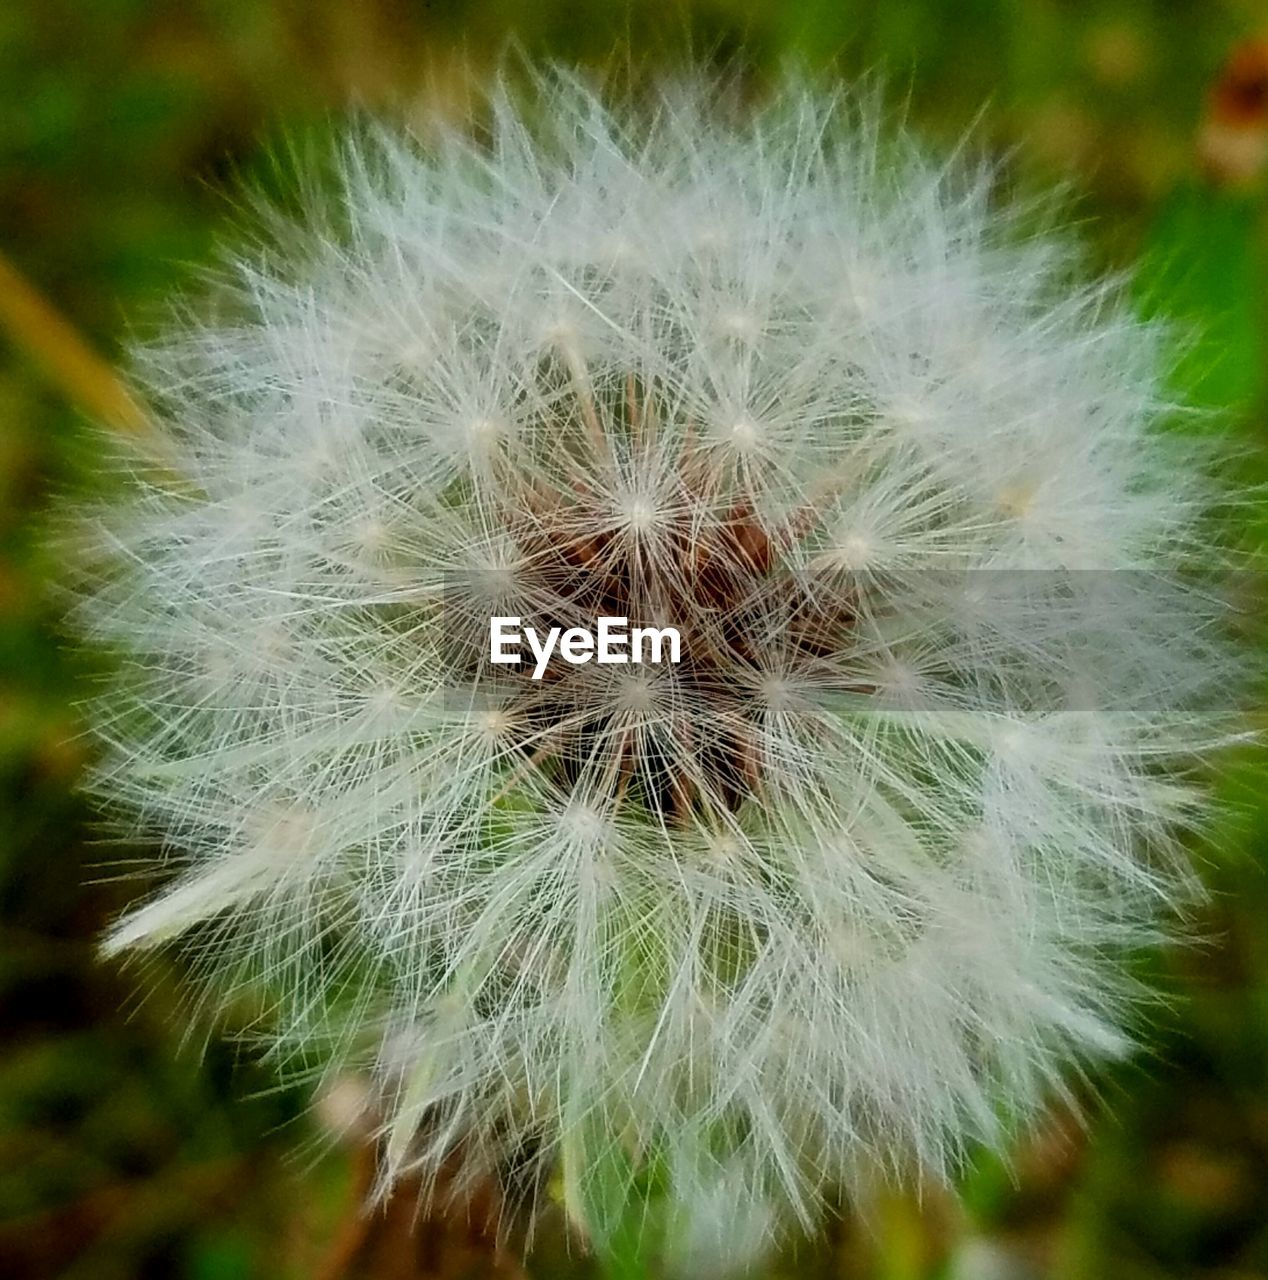 flower, fragility, dandelion, nature, growth, flower head, close-up, softness, focus on foreground, plant, beauty in nature, uncultivated, freshness, wildflower, no people, outdoors, day